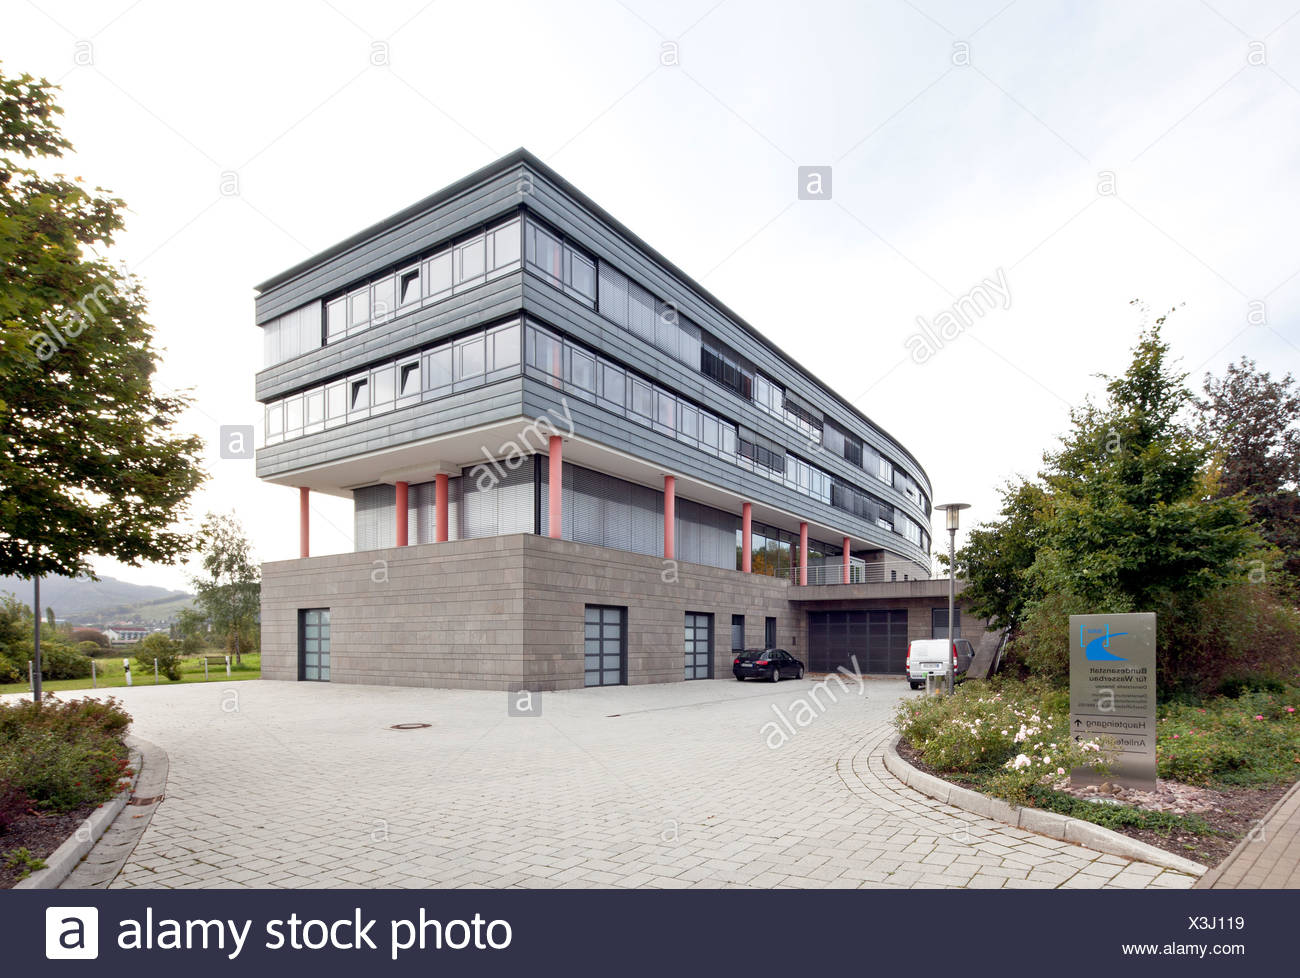 Federal Institute for Hydraulic Engineering, Ilmenau, Thuringia, Germany, Europe, PublicGround - Stock Image